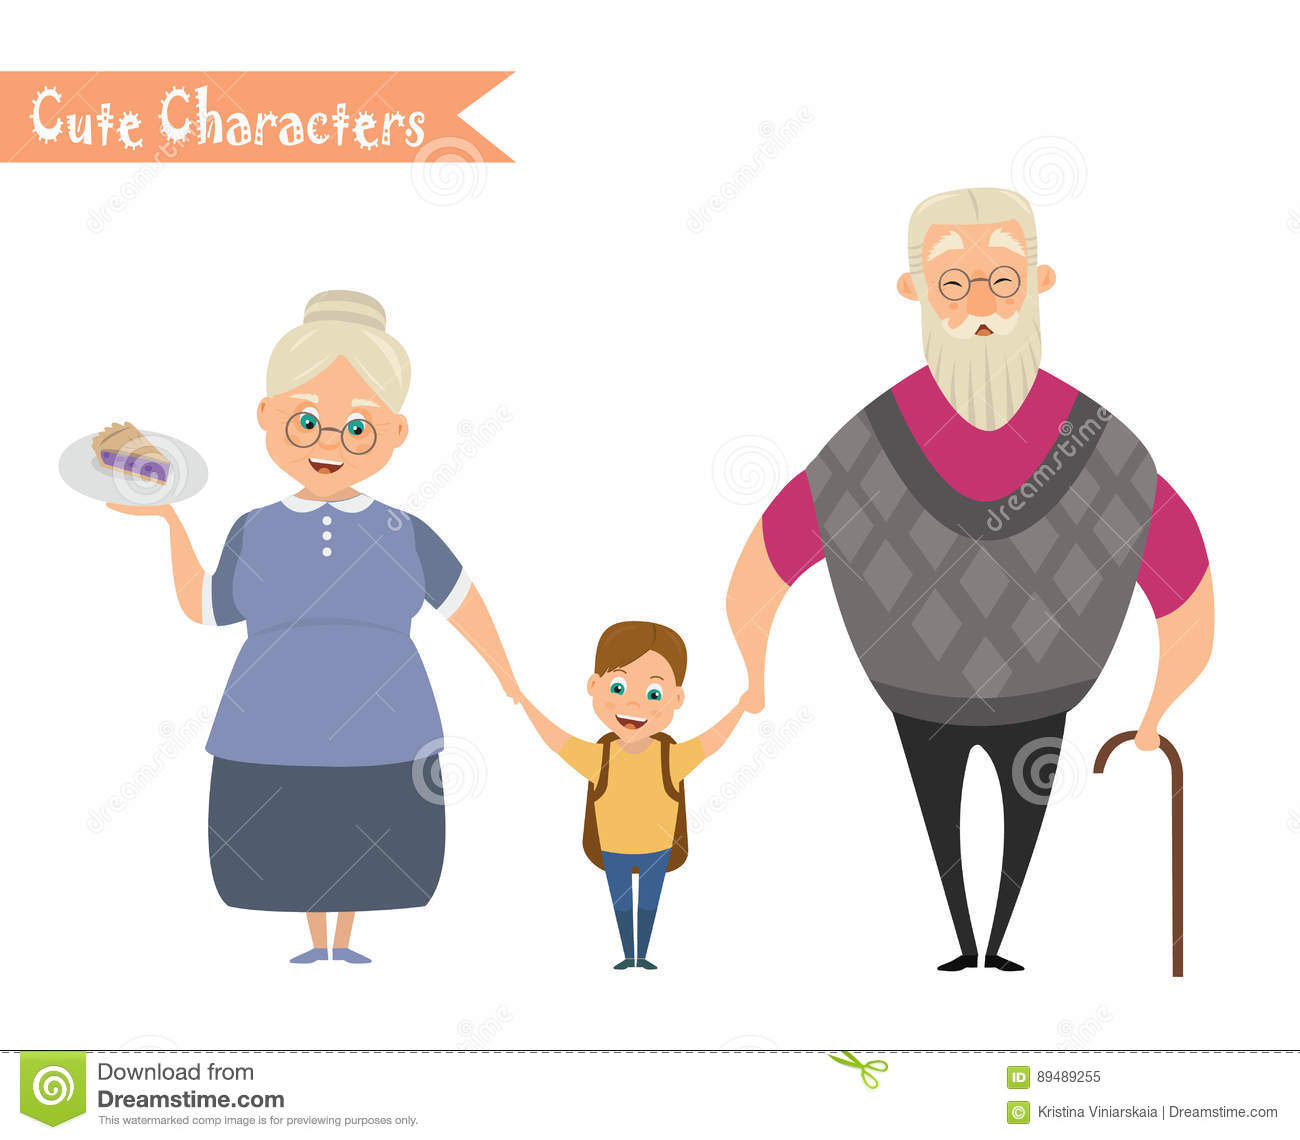 Grandfather, grandmother and grandson together.